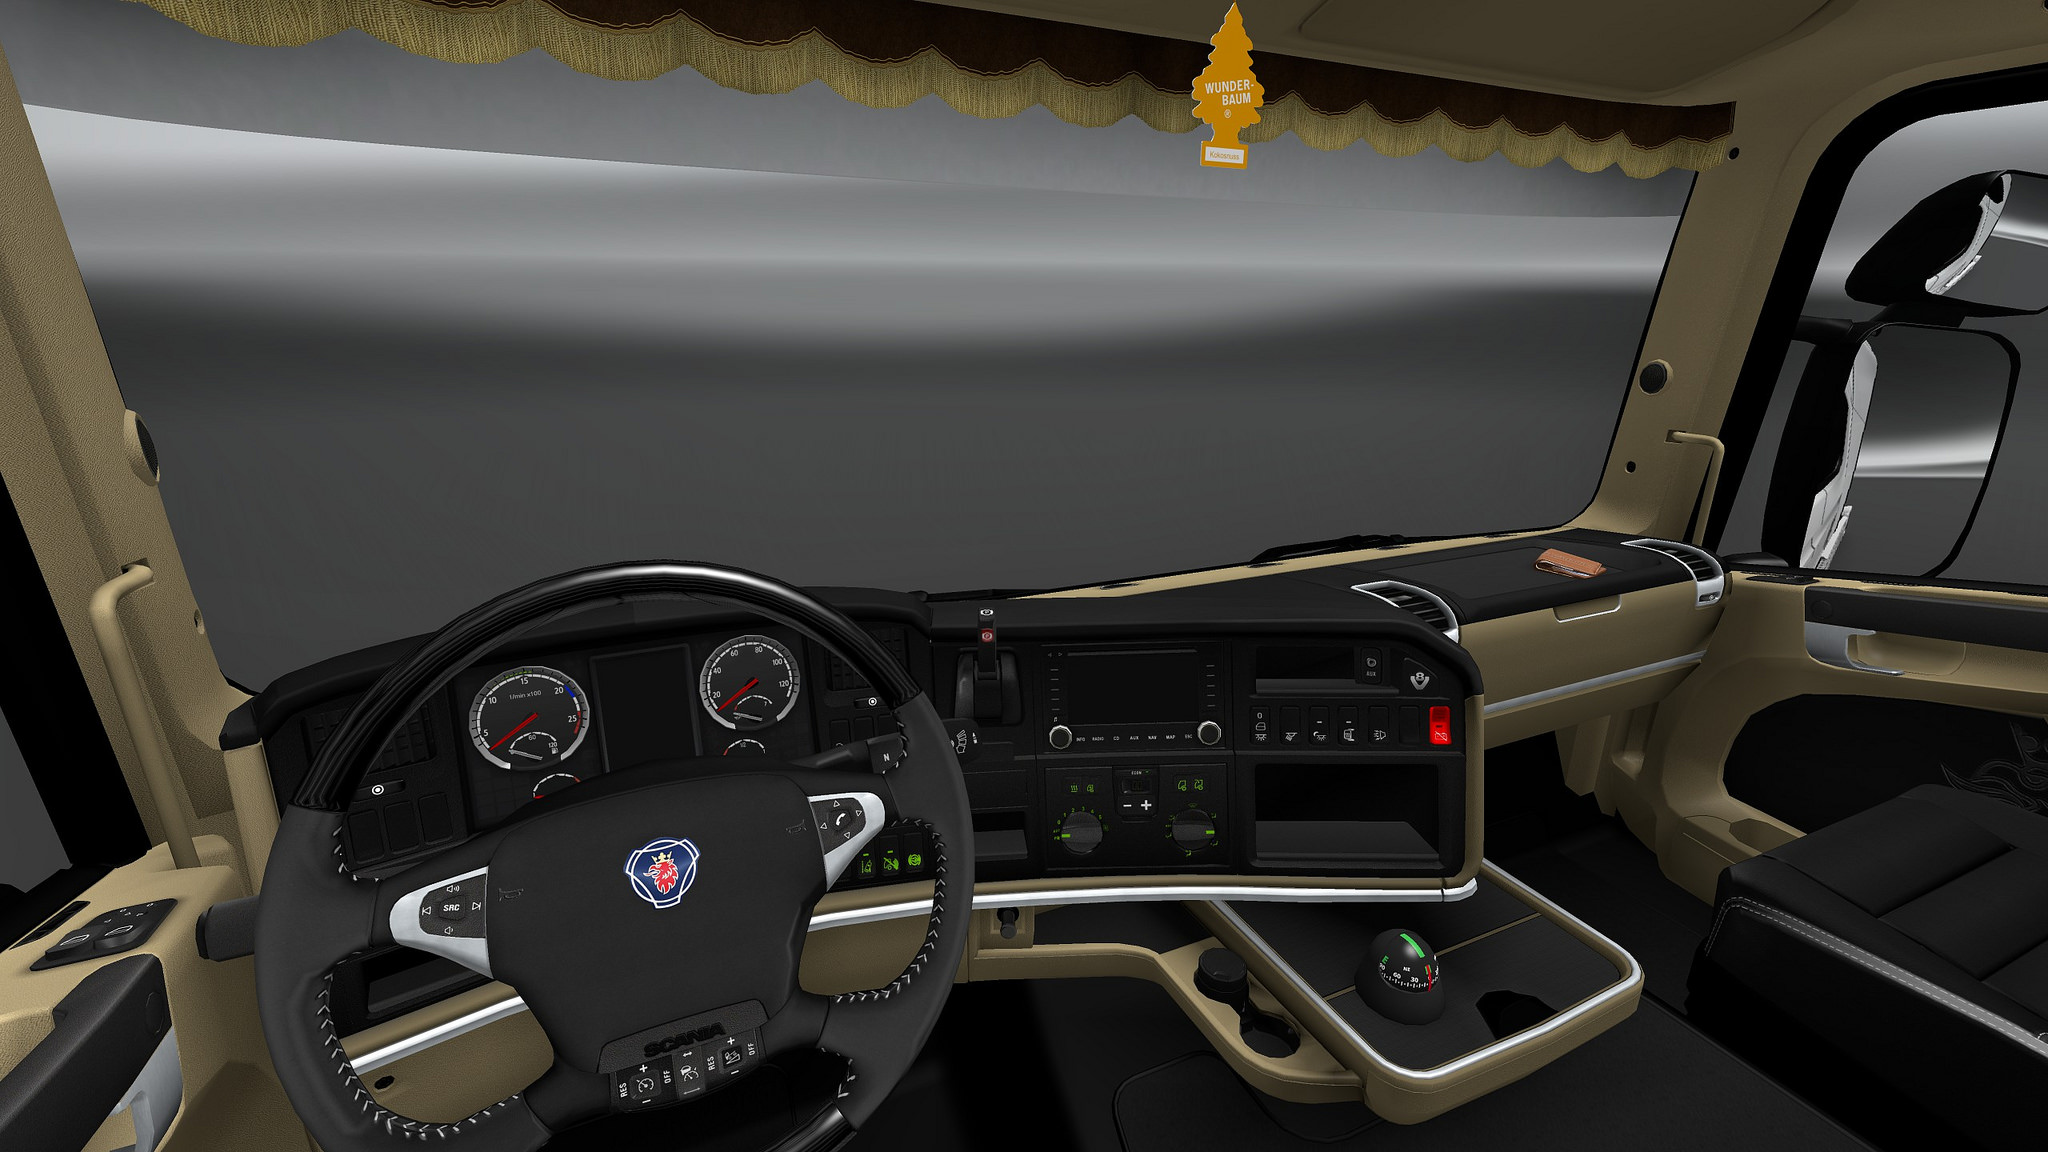 Scania trucks interiors & exteriors improvements pack v1.1